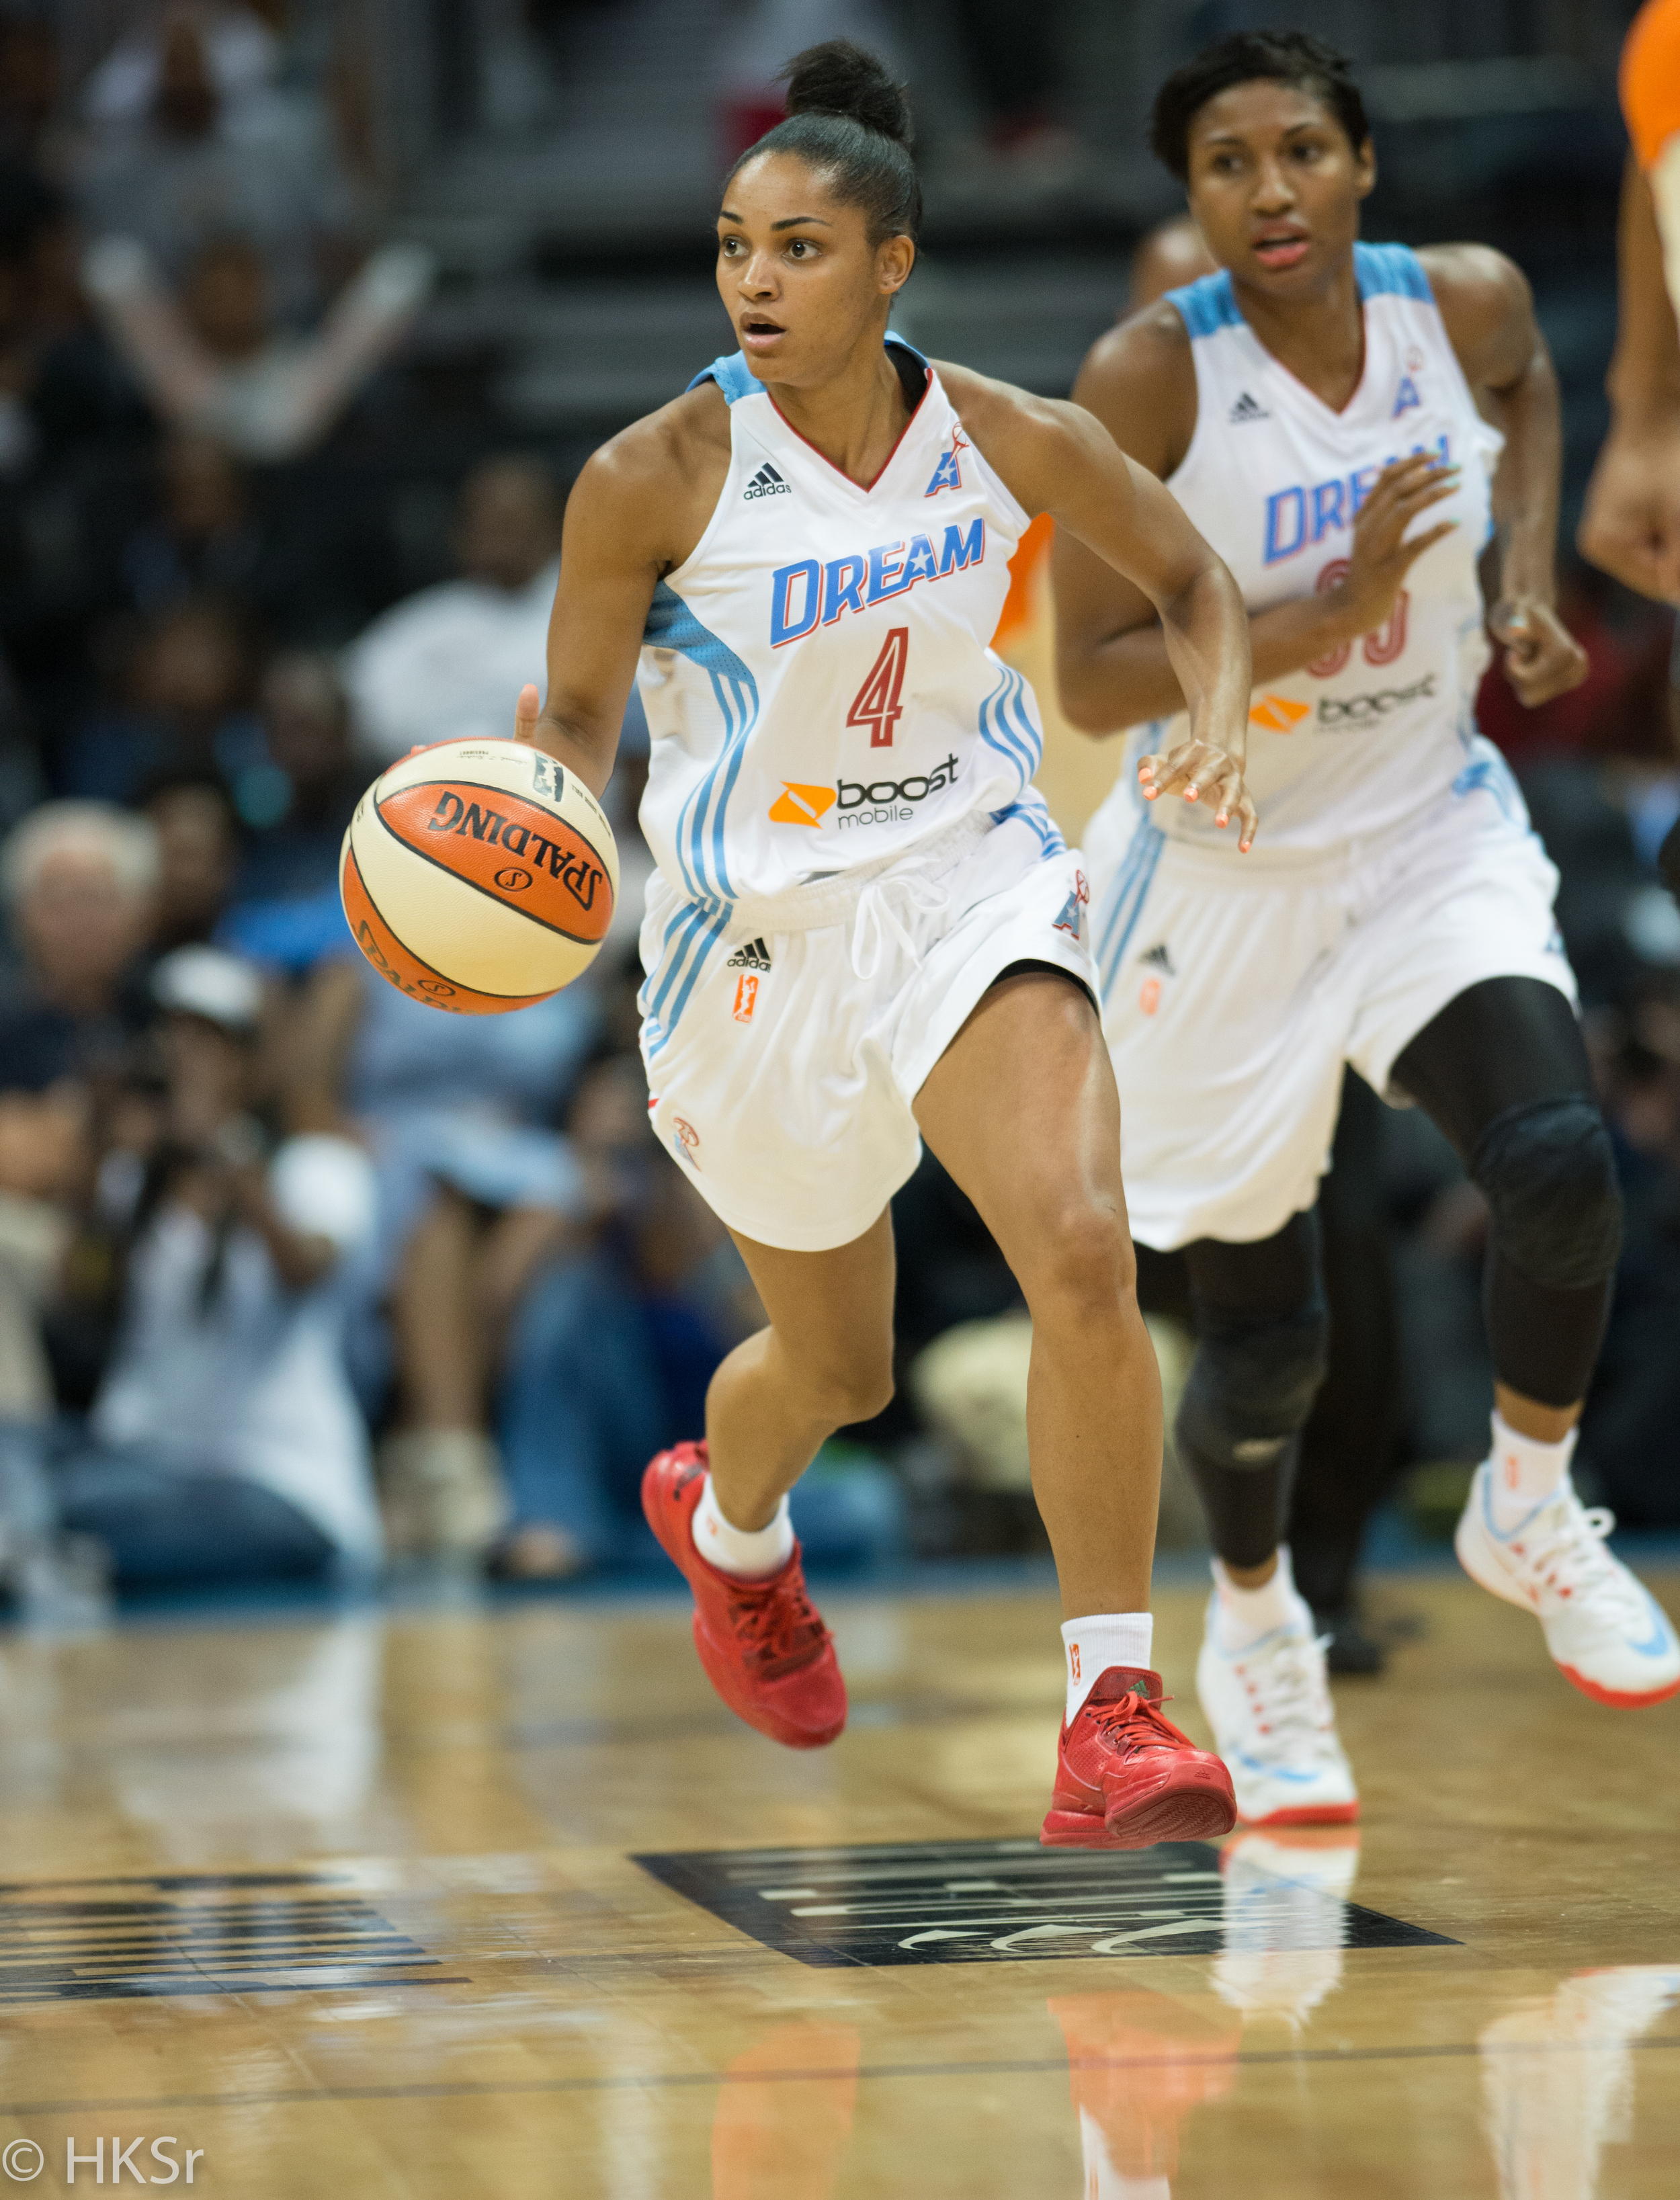 Atlanta Dream #4 Sydney Carter on a fast break